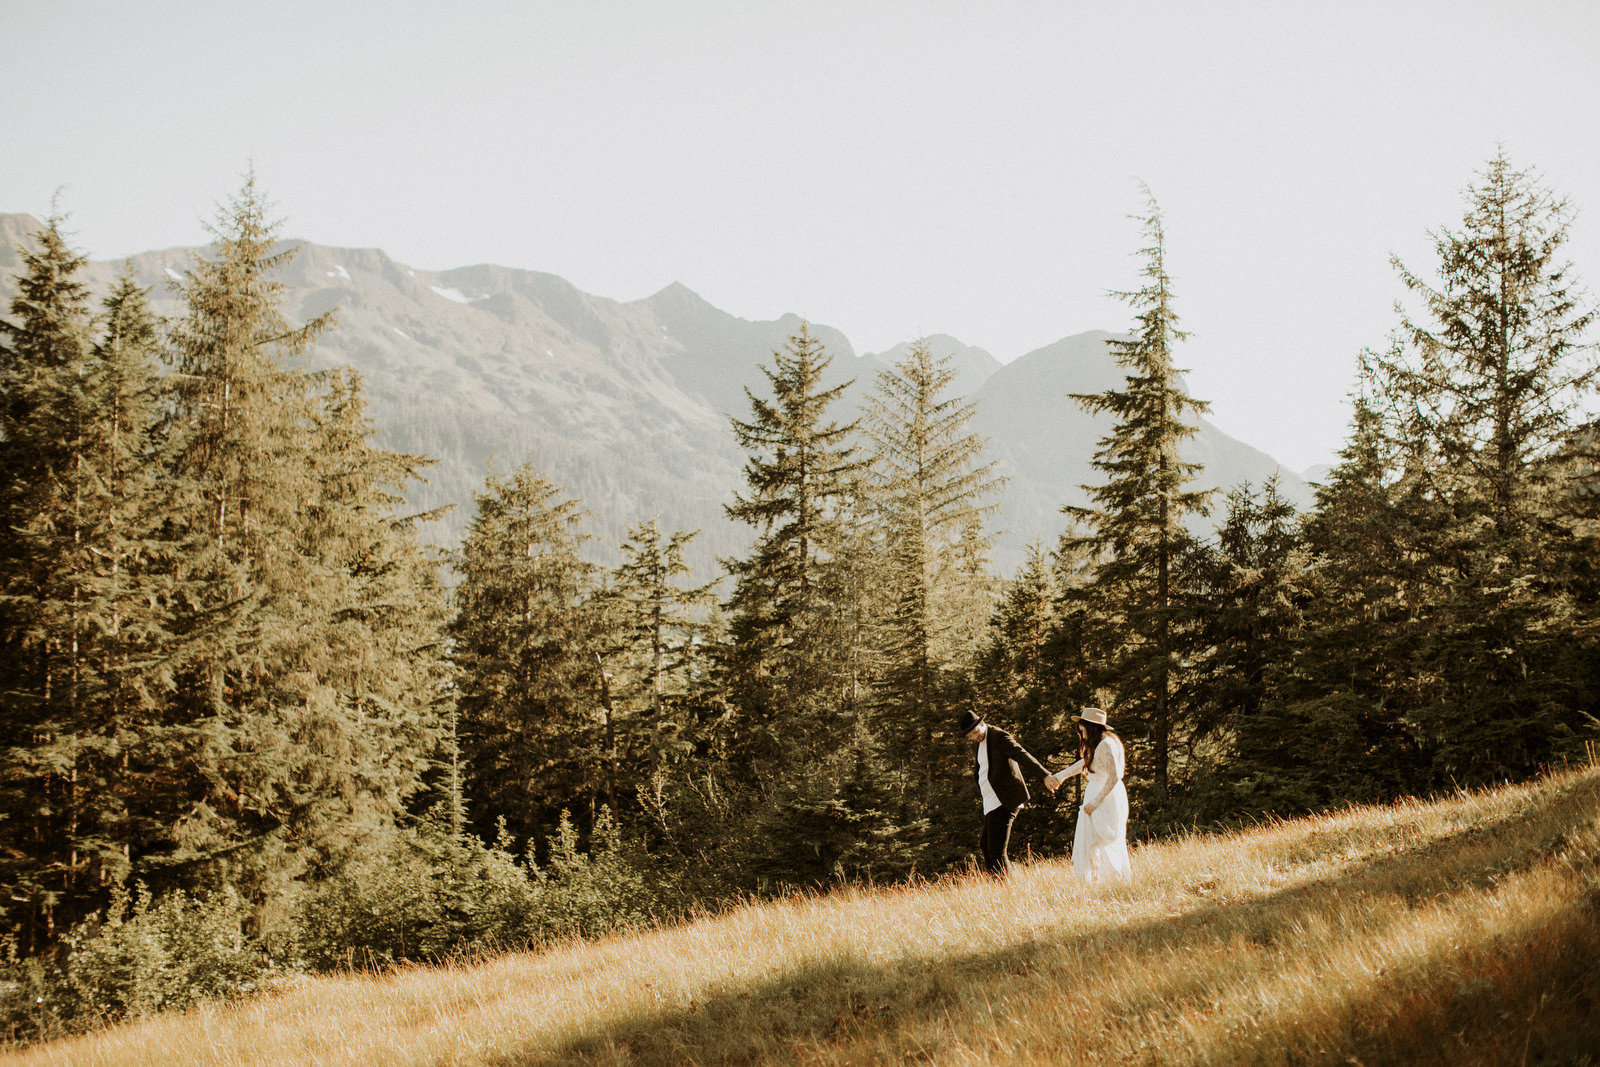 athena-and-camron-alaska-elopement-wedding-inspiration-india-earl-athena-grace-glacier-lagoon-wedding44